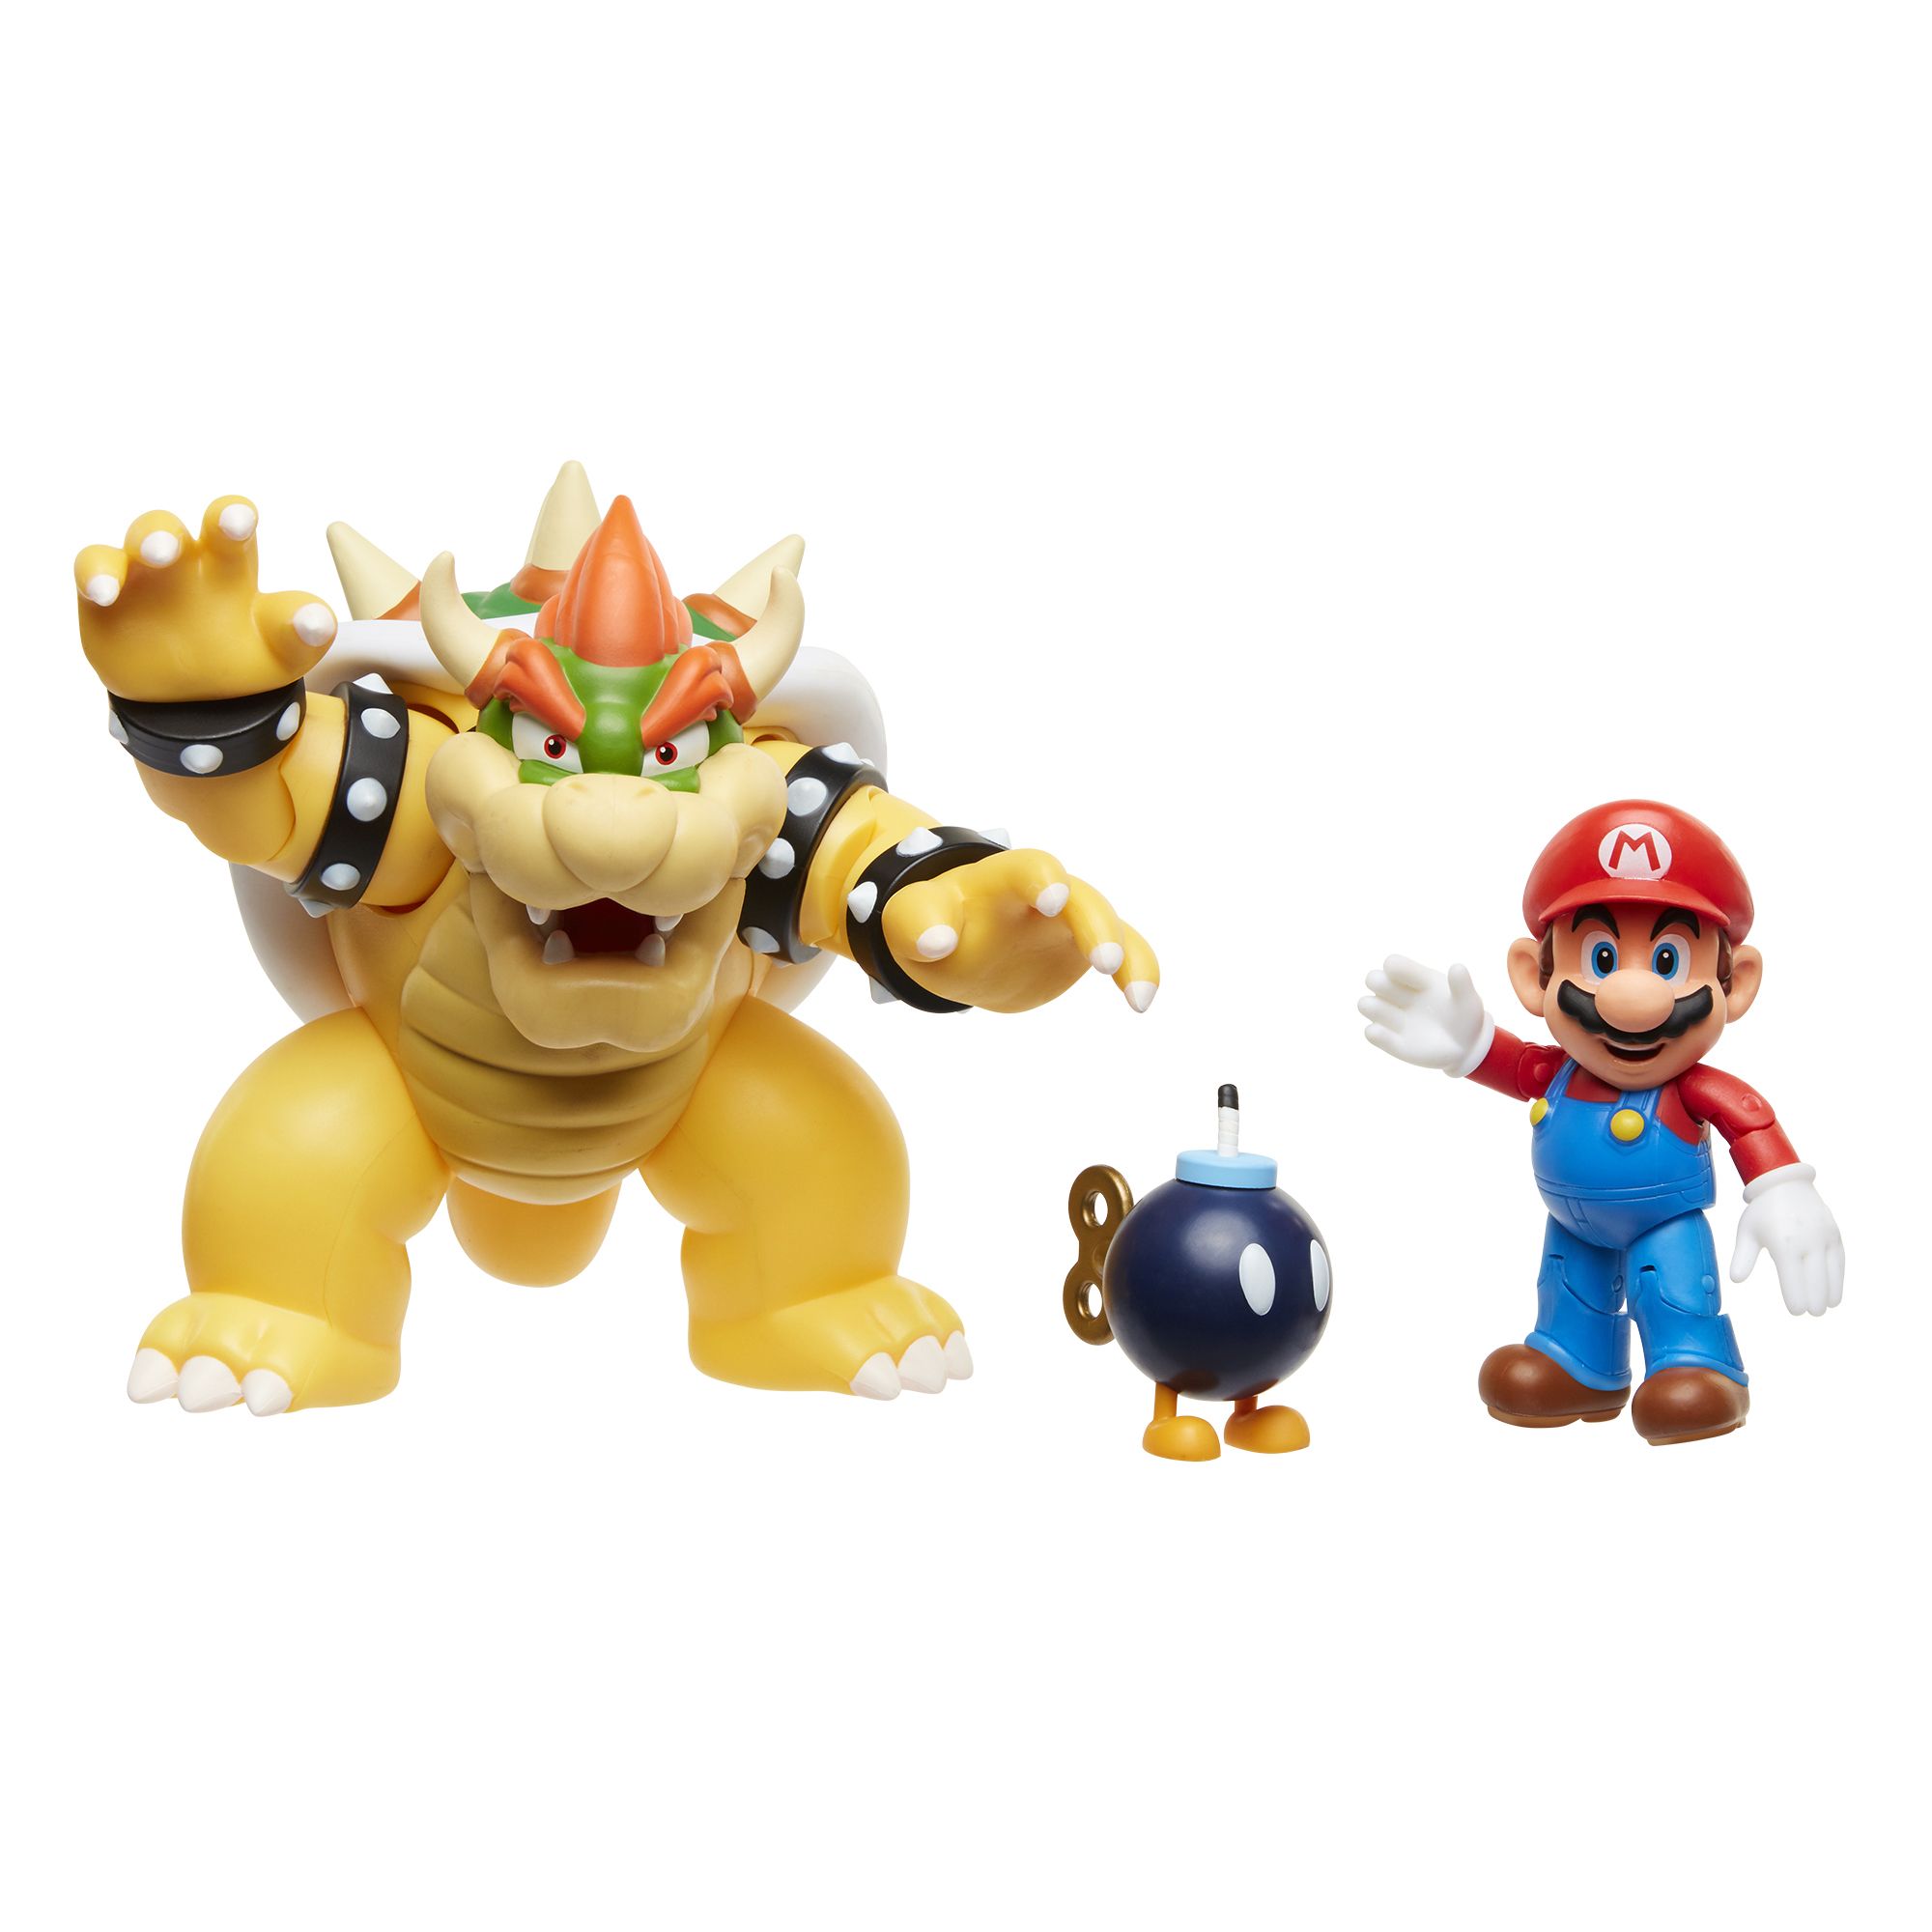 Super Mario Mario vs. Bowser Diorama Set